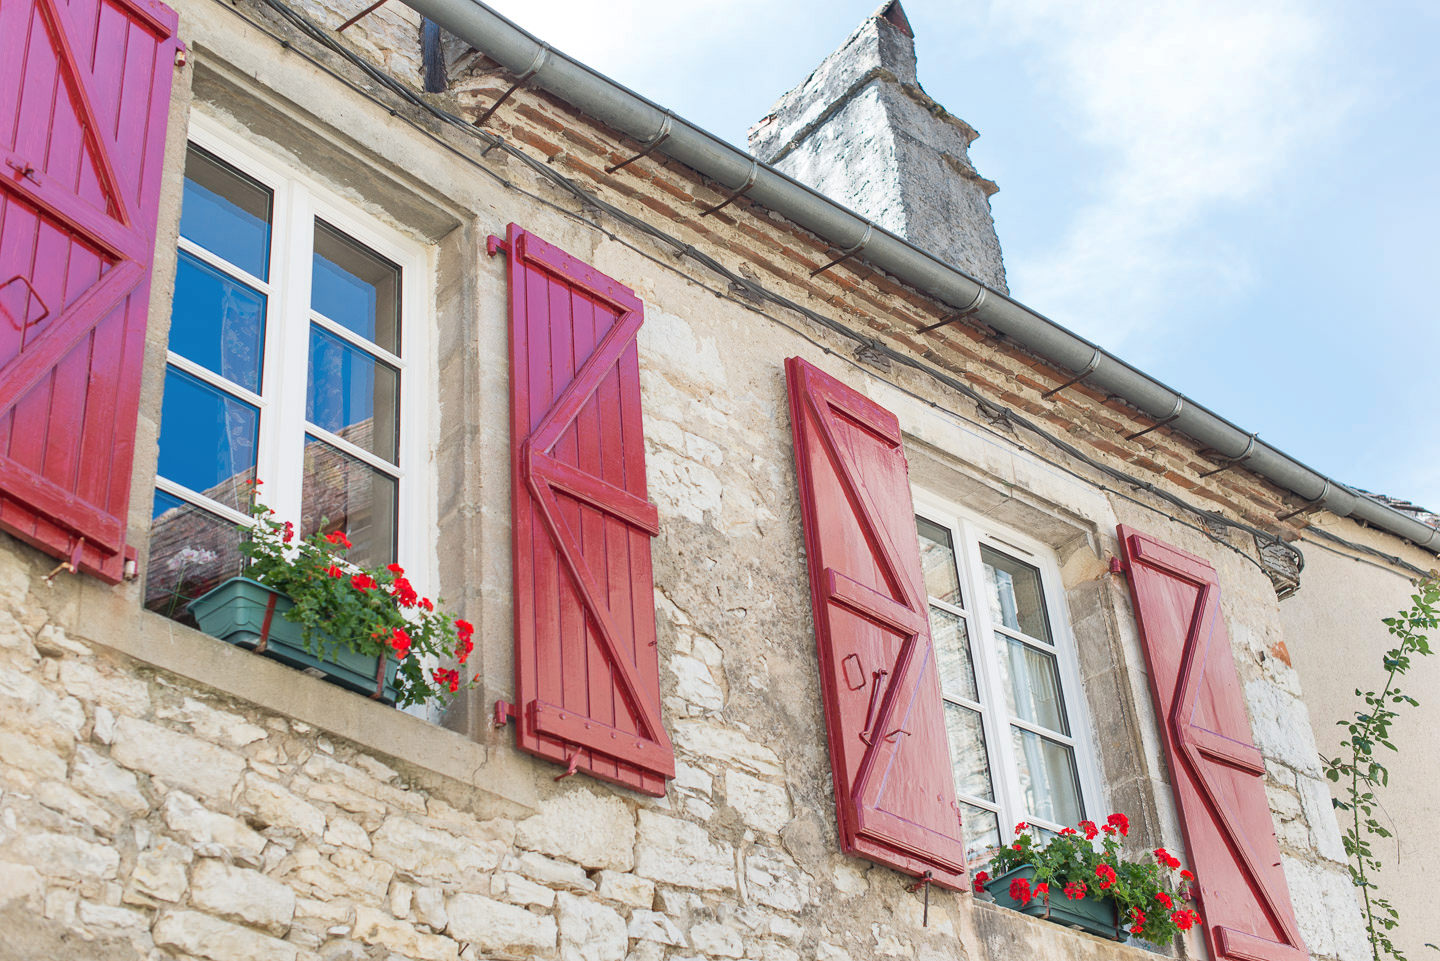 Blog-Mode-and-the-city-lifestyle-5-petites-choses-223-provence